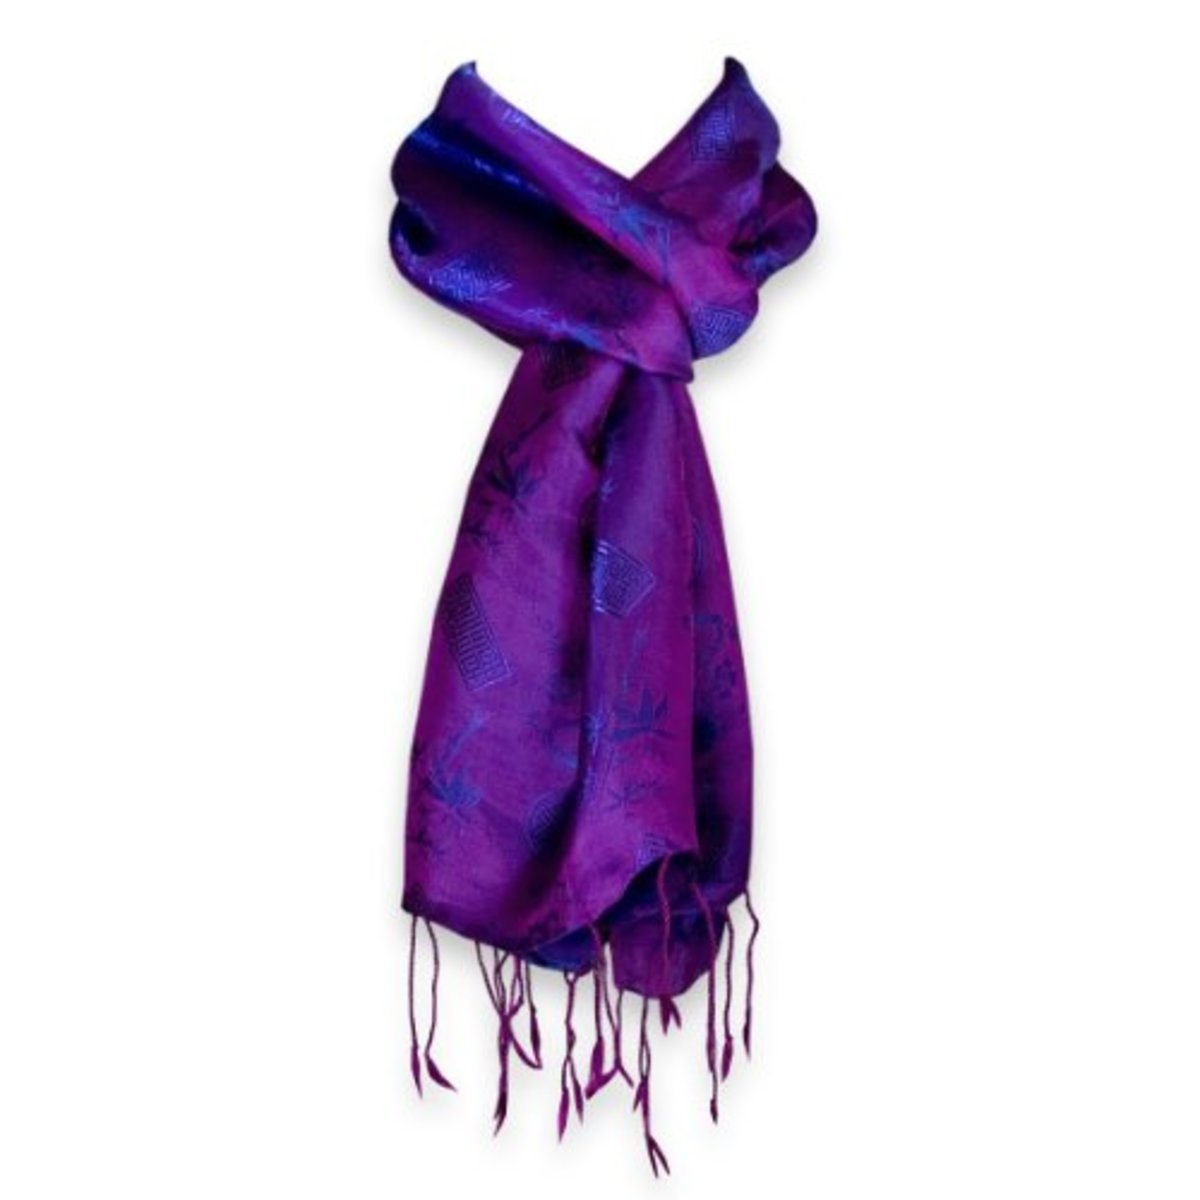 Colorful pashmina scarf brings life to the face and sets the tone for great fashion.